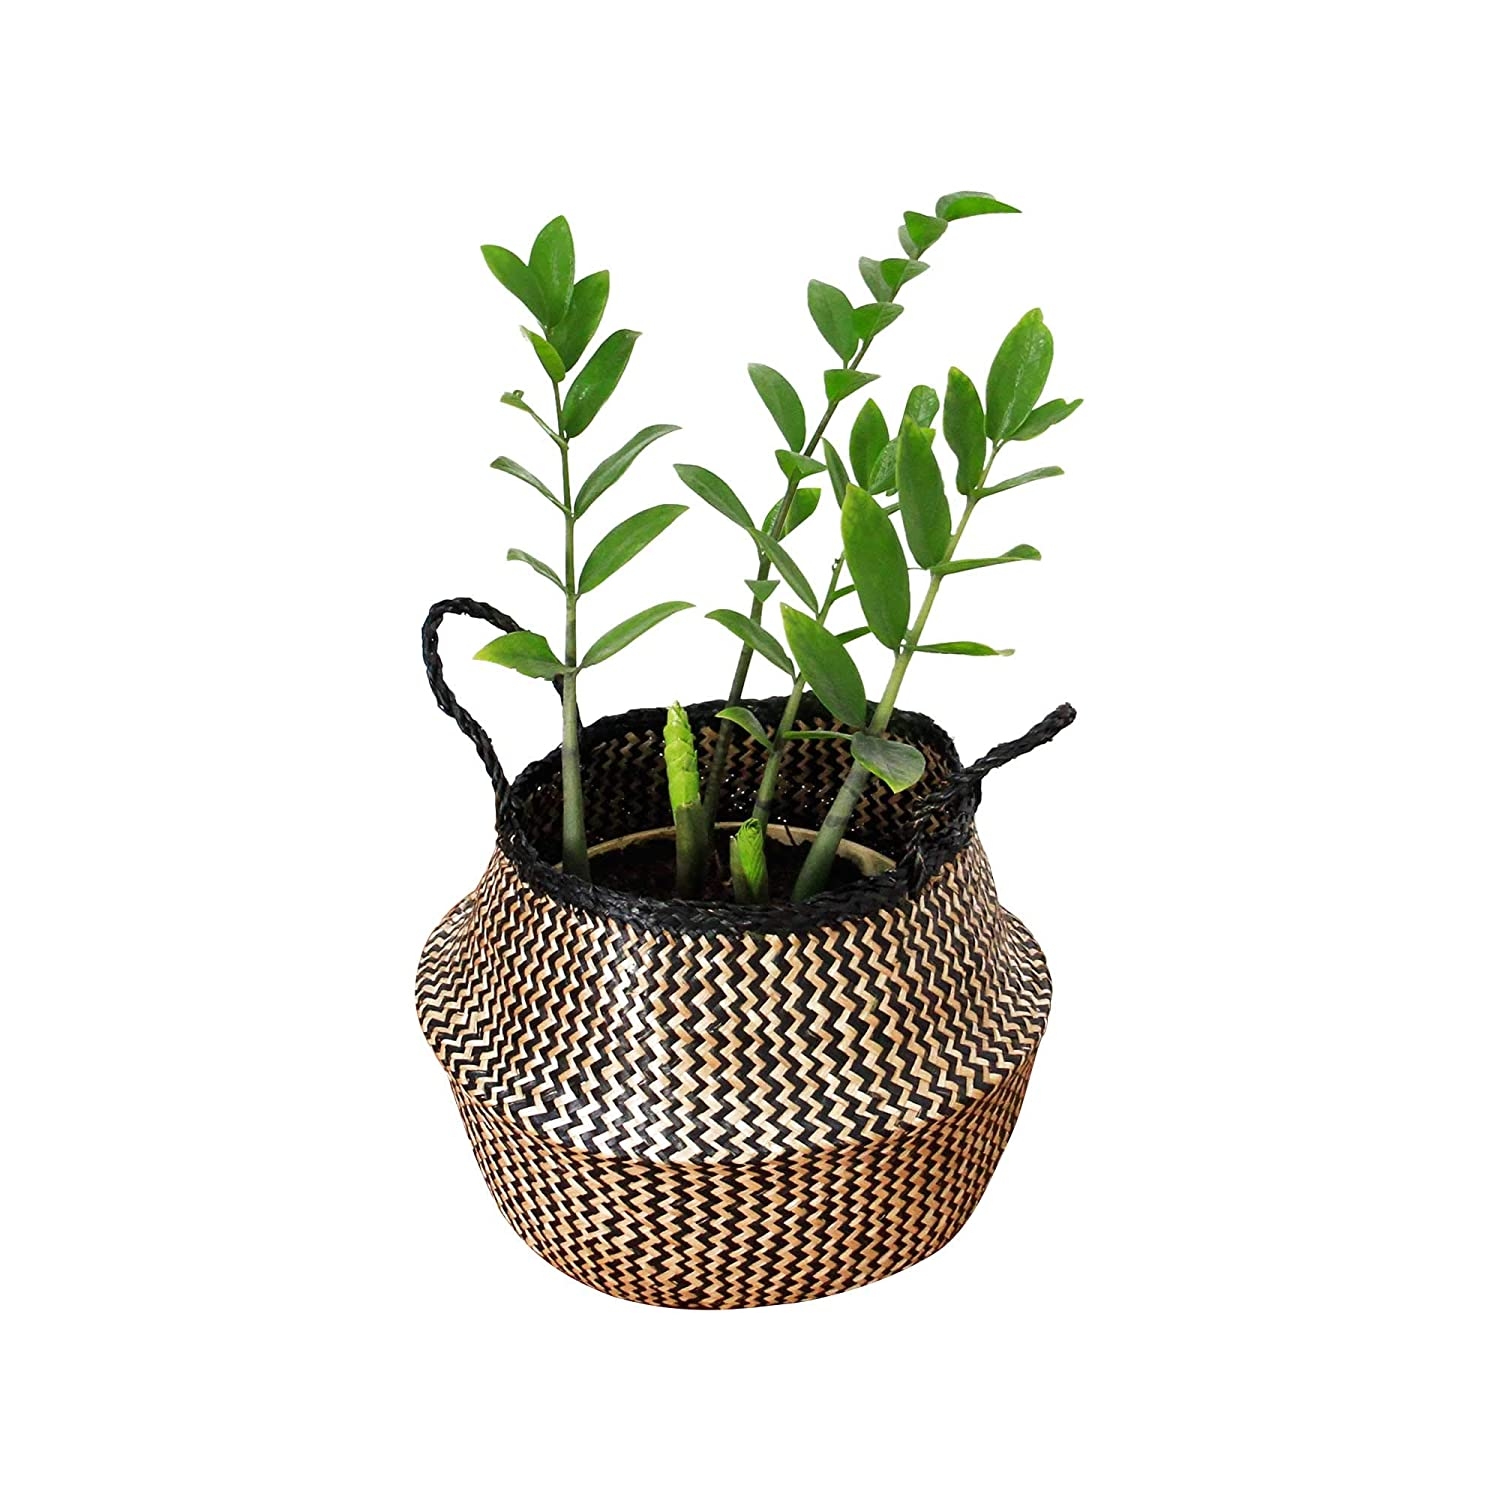 Braided Crown Plant Pot Cover Beach Bag Plant Basket Natural Plush Woven Seagrass Tote Belly Basket Storage Laundry Seagrass Natural /& White Zig Zag Pattern, Extra Large